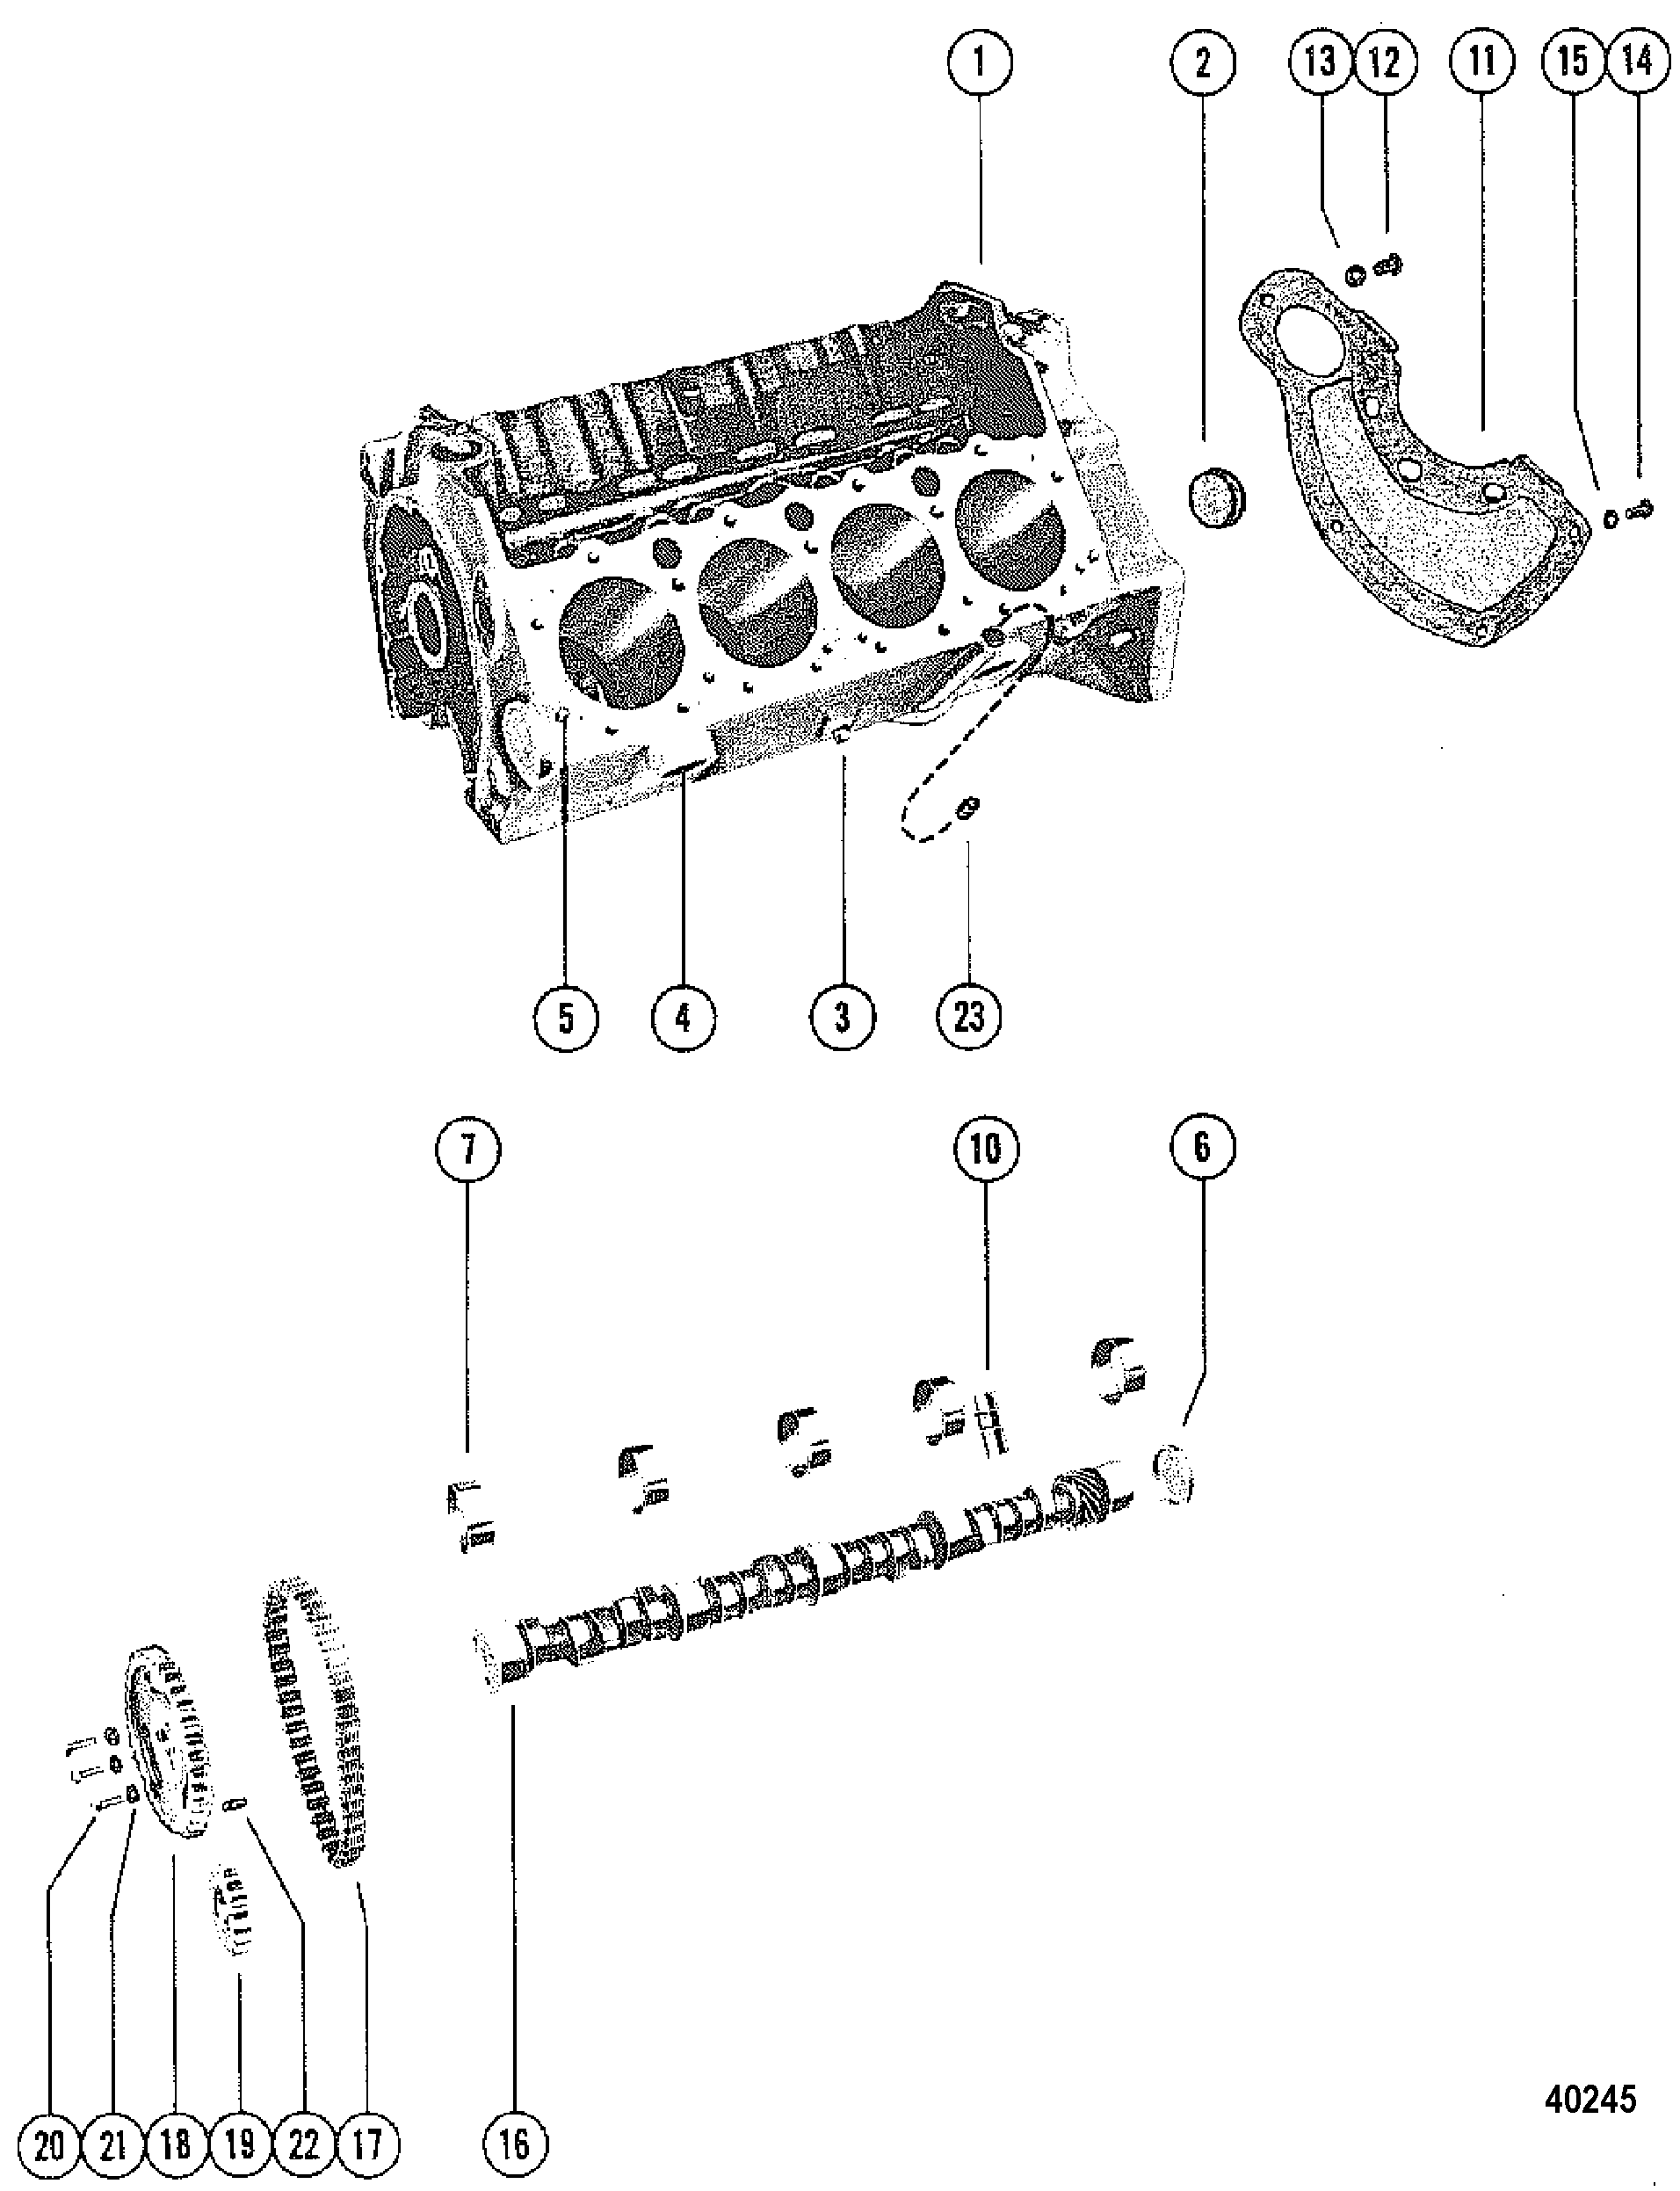 hight resolution of mercury mercruiser 228 mie 4 bbl gm 305 v 8 1979 1980 5170009 thru 5907057 cylinder block and camshaft